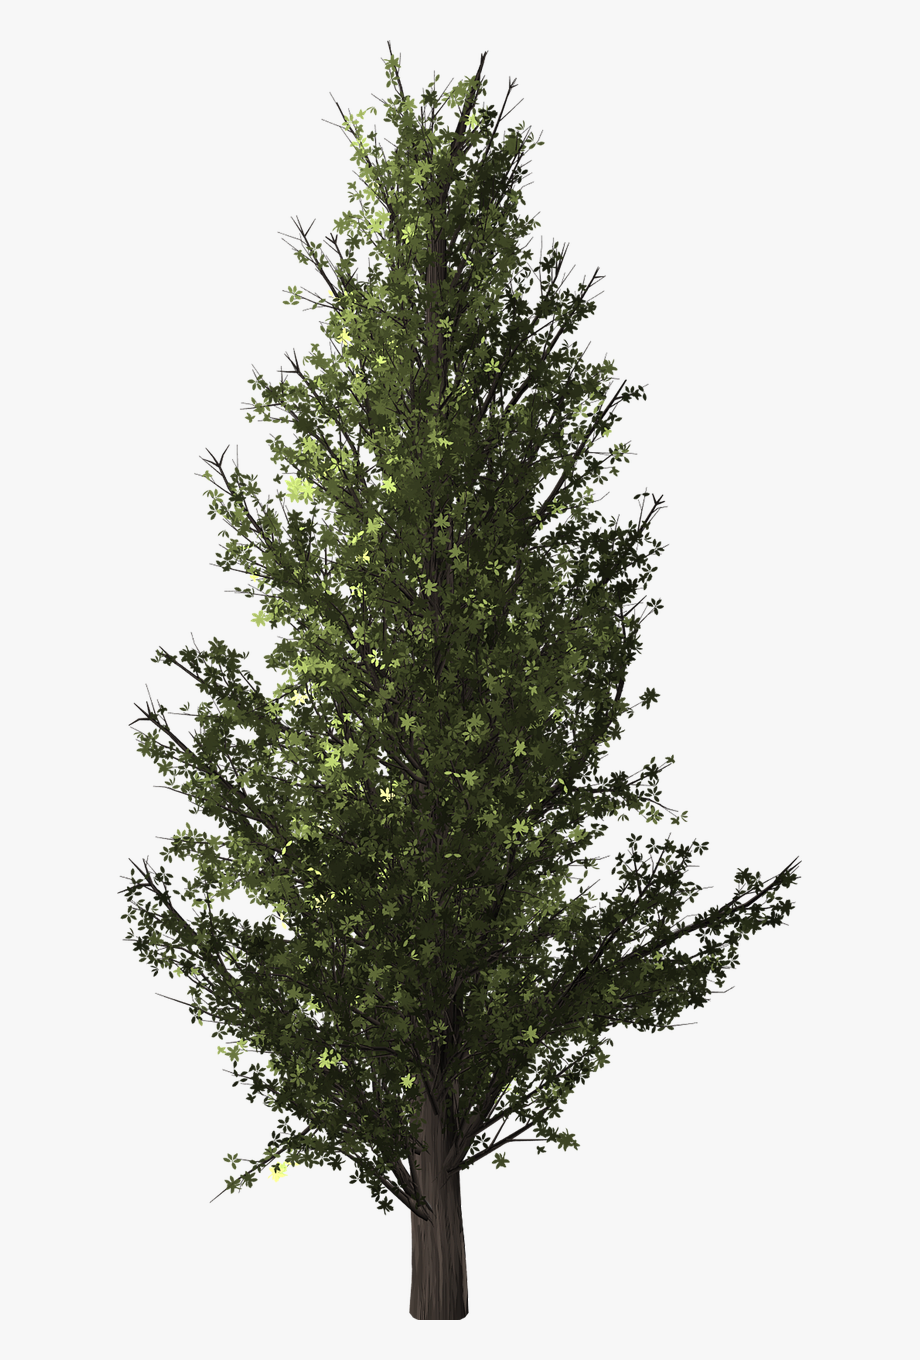 American forest clipart clip art freeuse Forest, Tree, Poplar, Transparent, Isolated - Forest Tree ... clip art freeuse